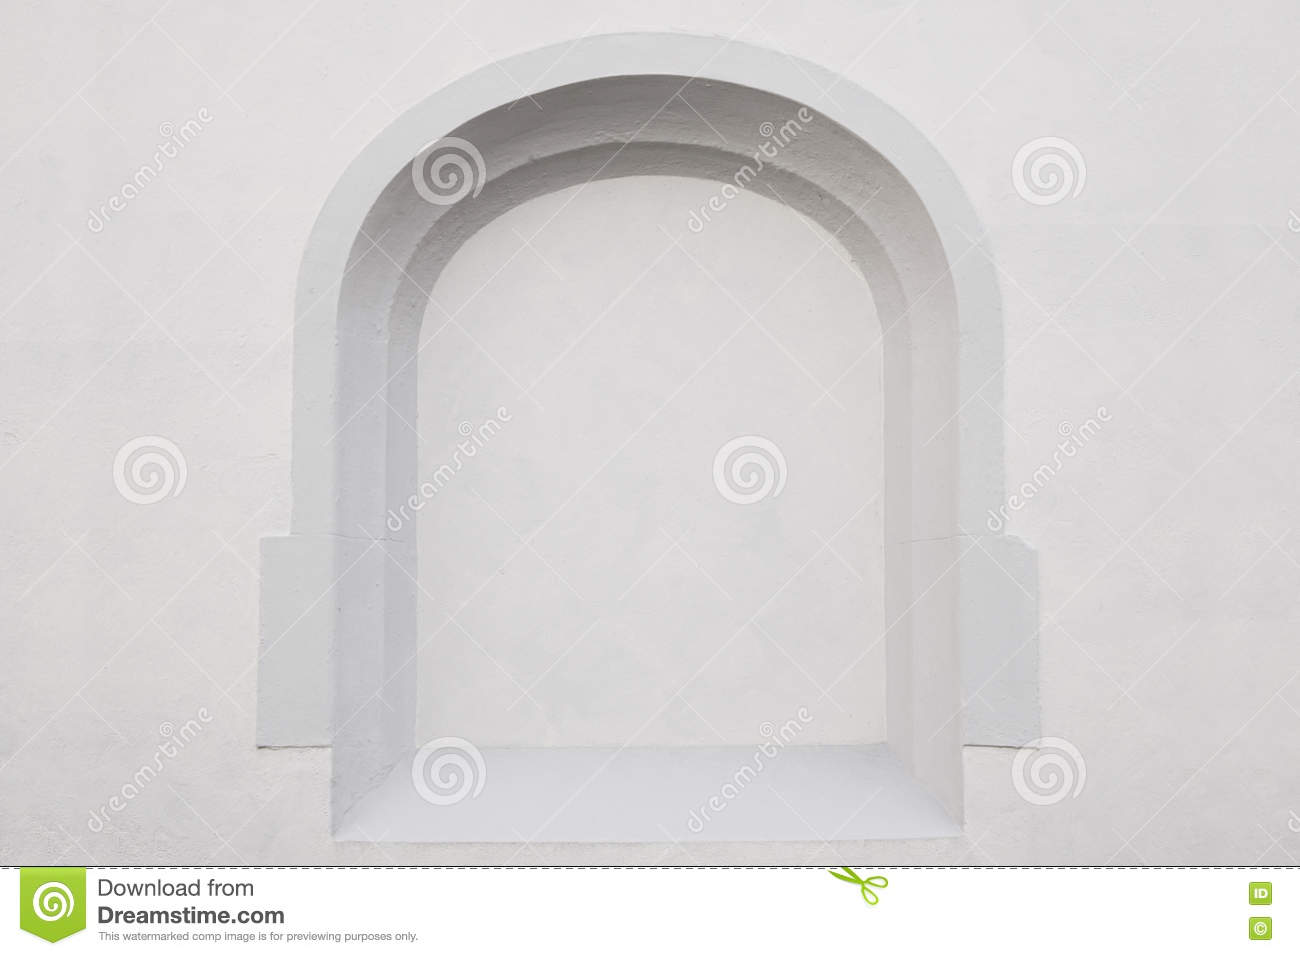 Wall With Alcove Background Stock Photo - Image: 75789509